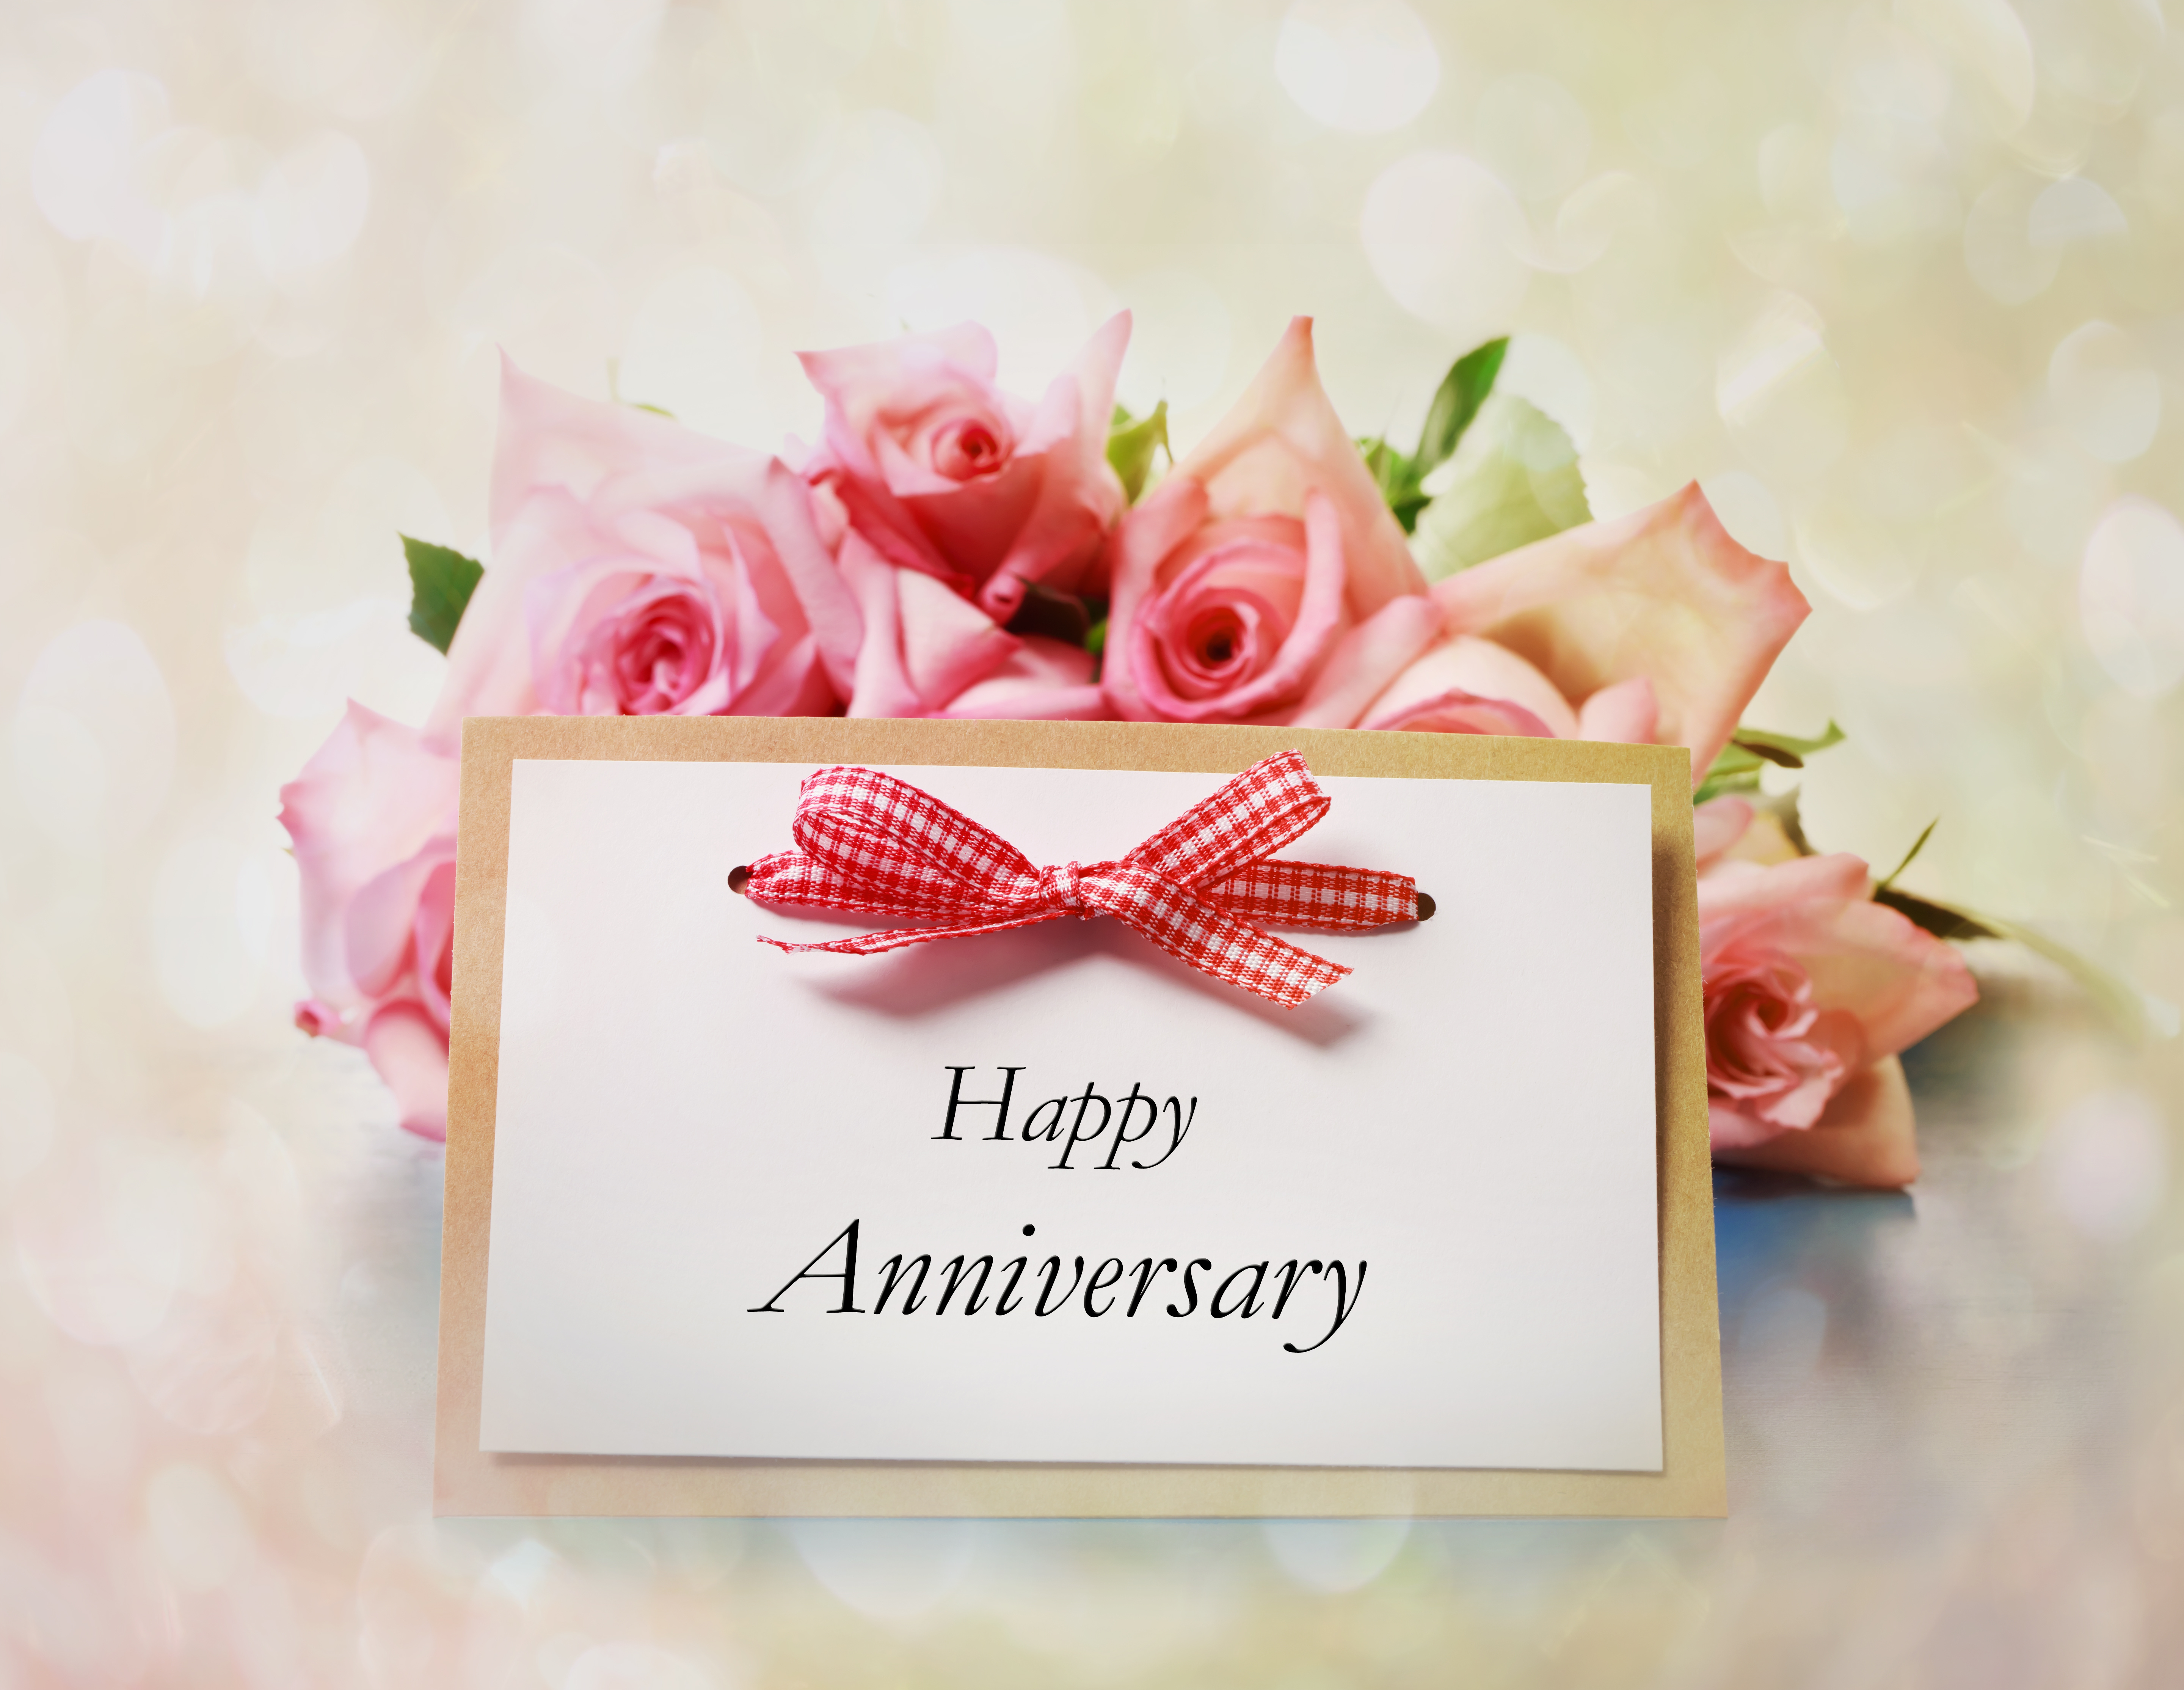 wedding anniversary cards   printable anniversary ecards using computer clipart clip art computers images